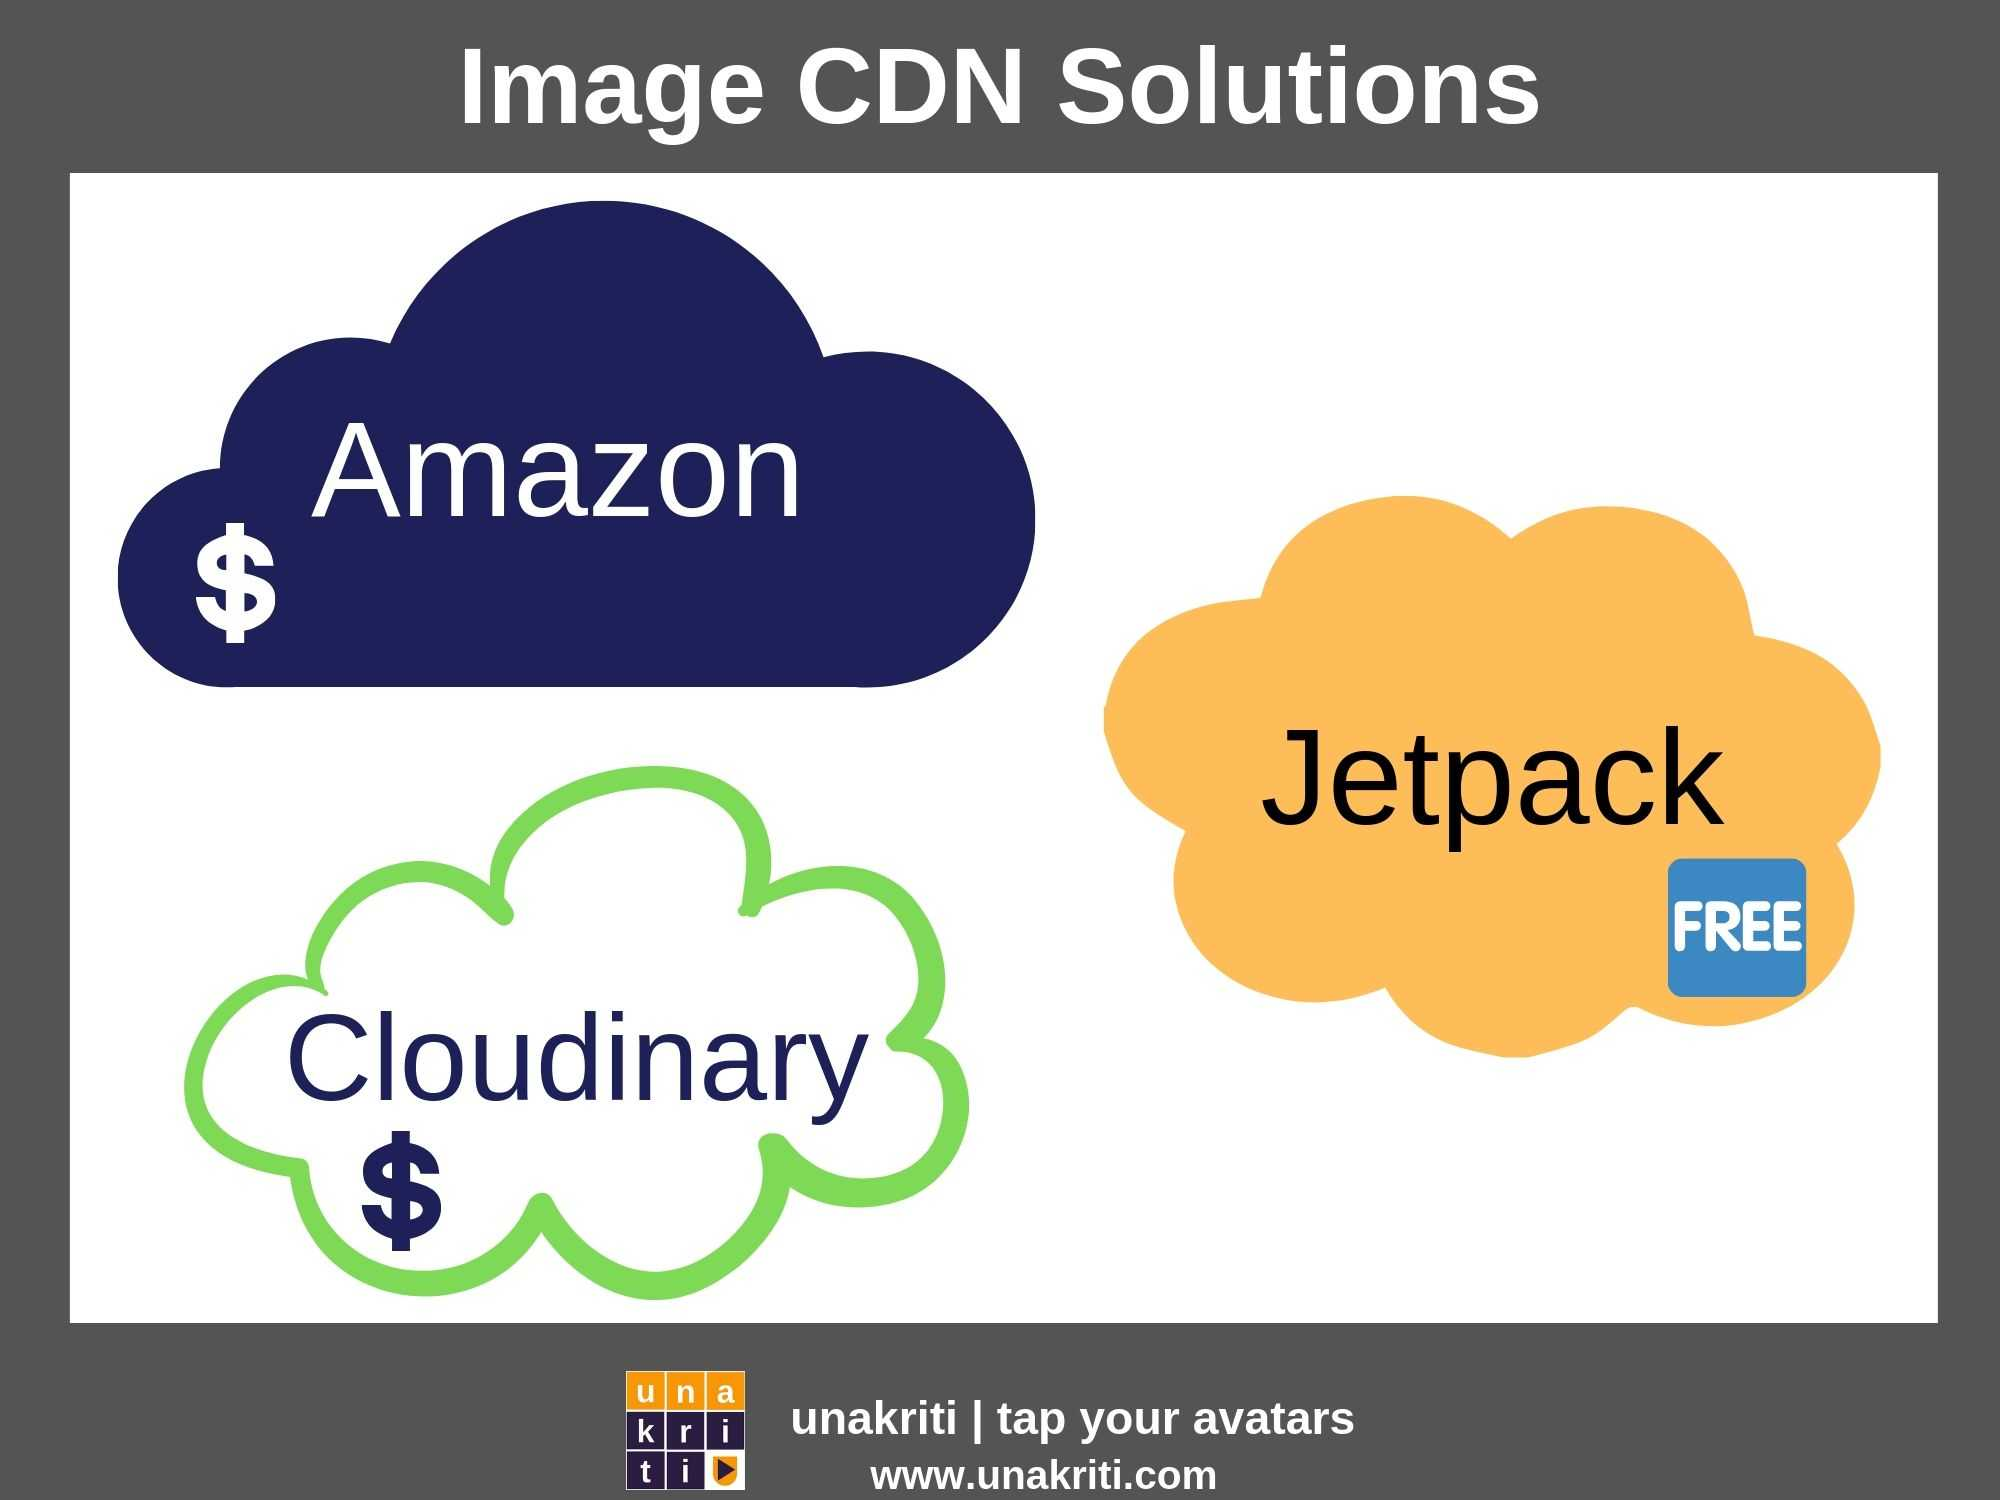 Which are the recommended Image CDN Solutions for a WordPress Site?